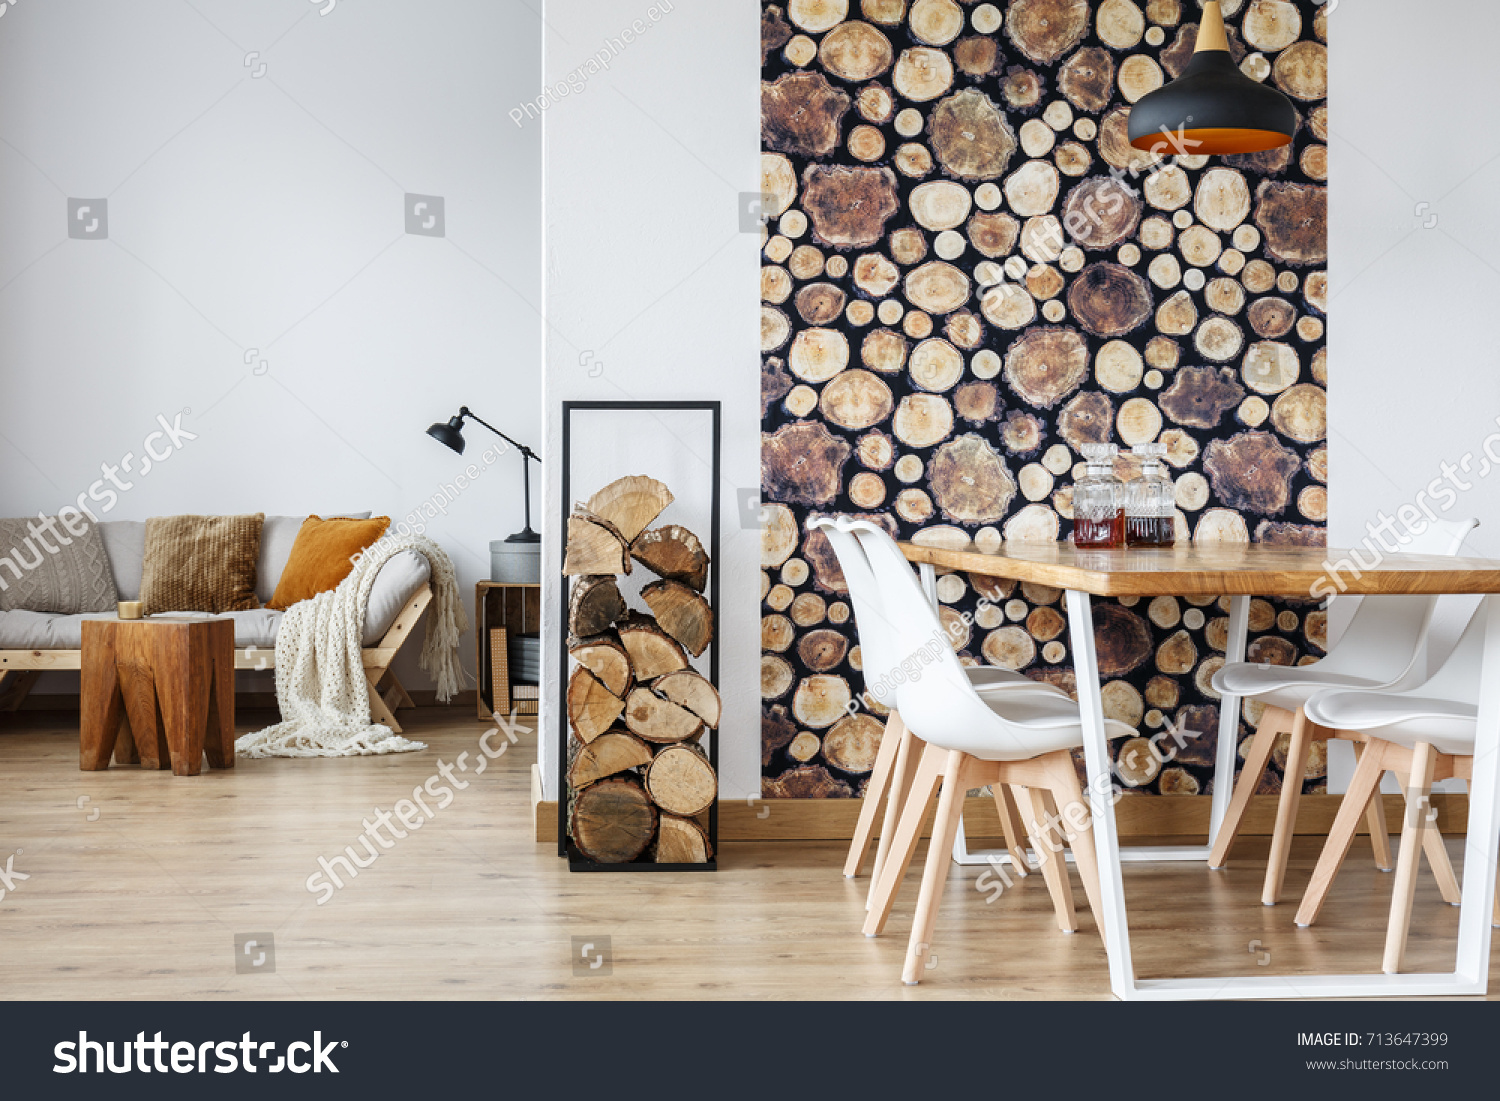 Open Dining Room Interior With Firewood, Communal Table And Wooden Log Wall  Decoration For Warm